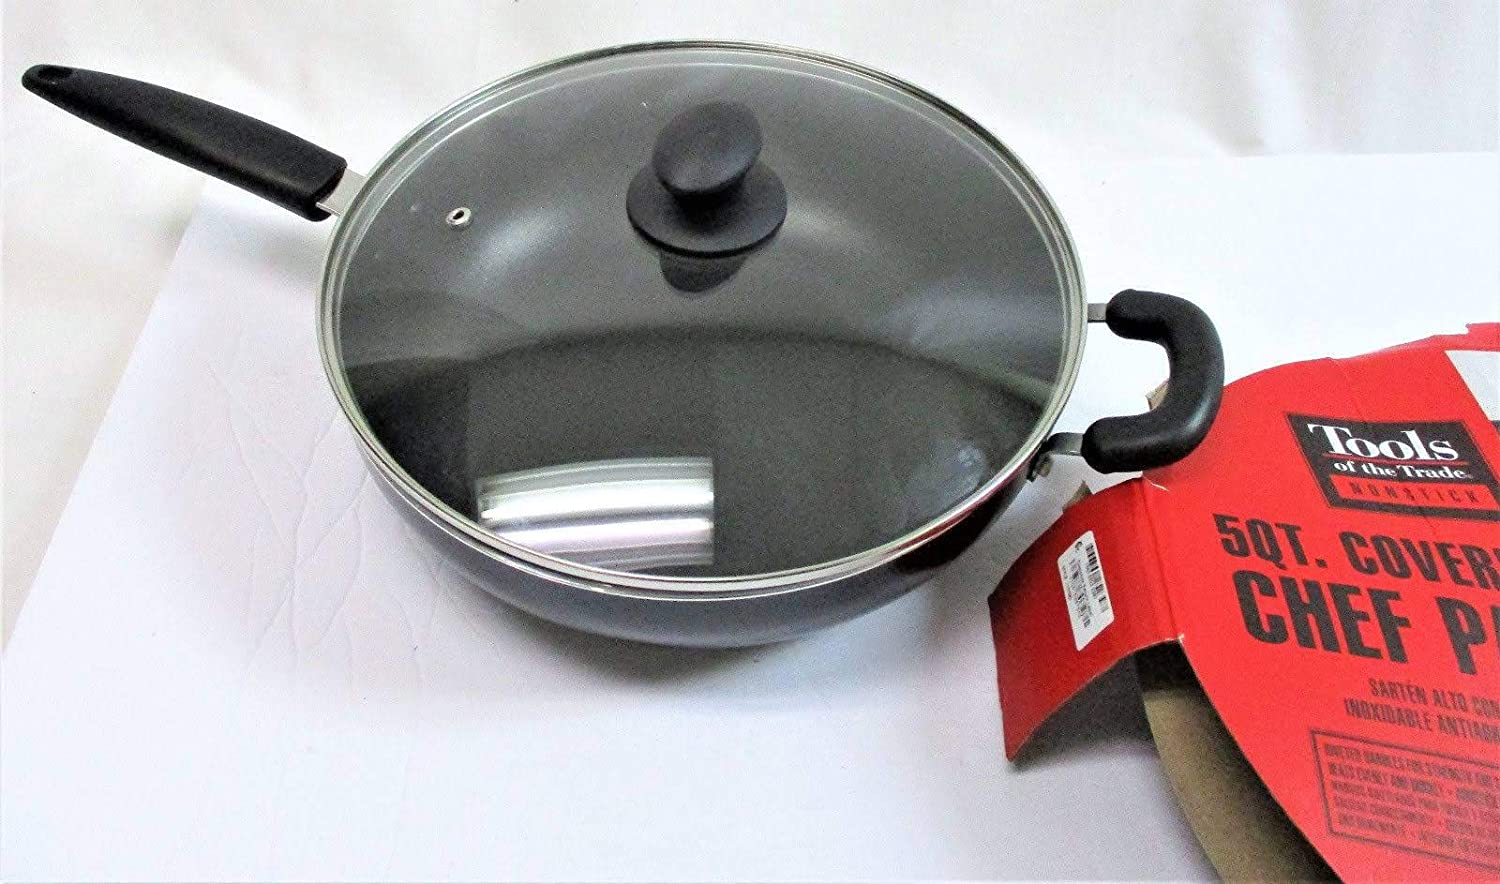 Tools of the Trade Basics Nonstick 5 Qt. Covered Chef's Pan